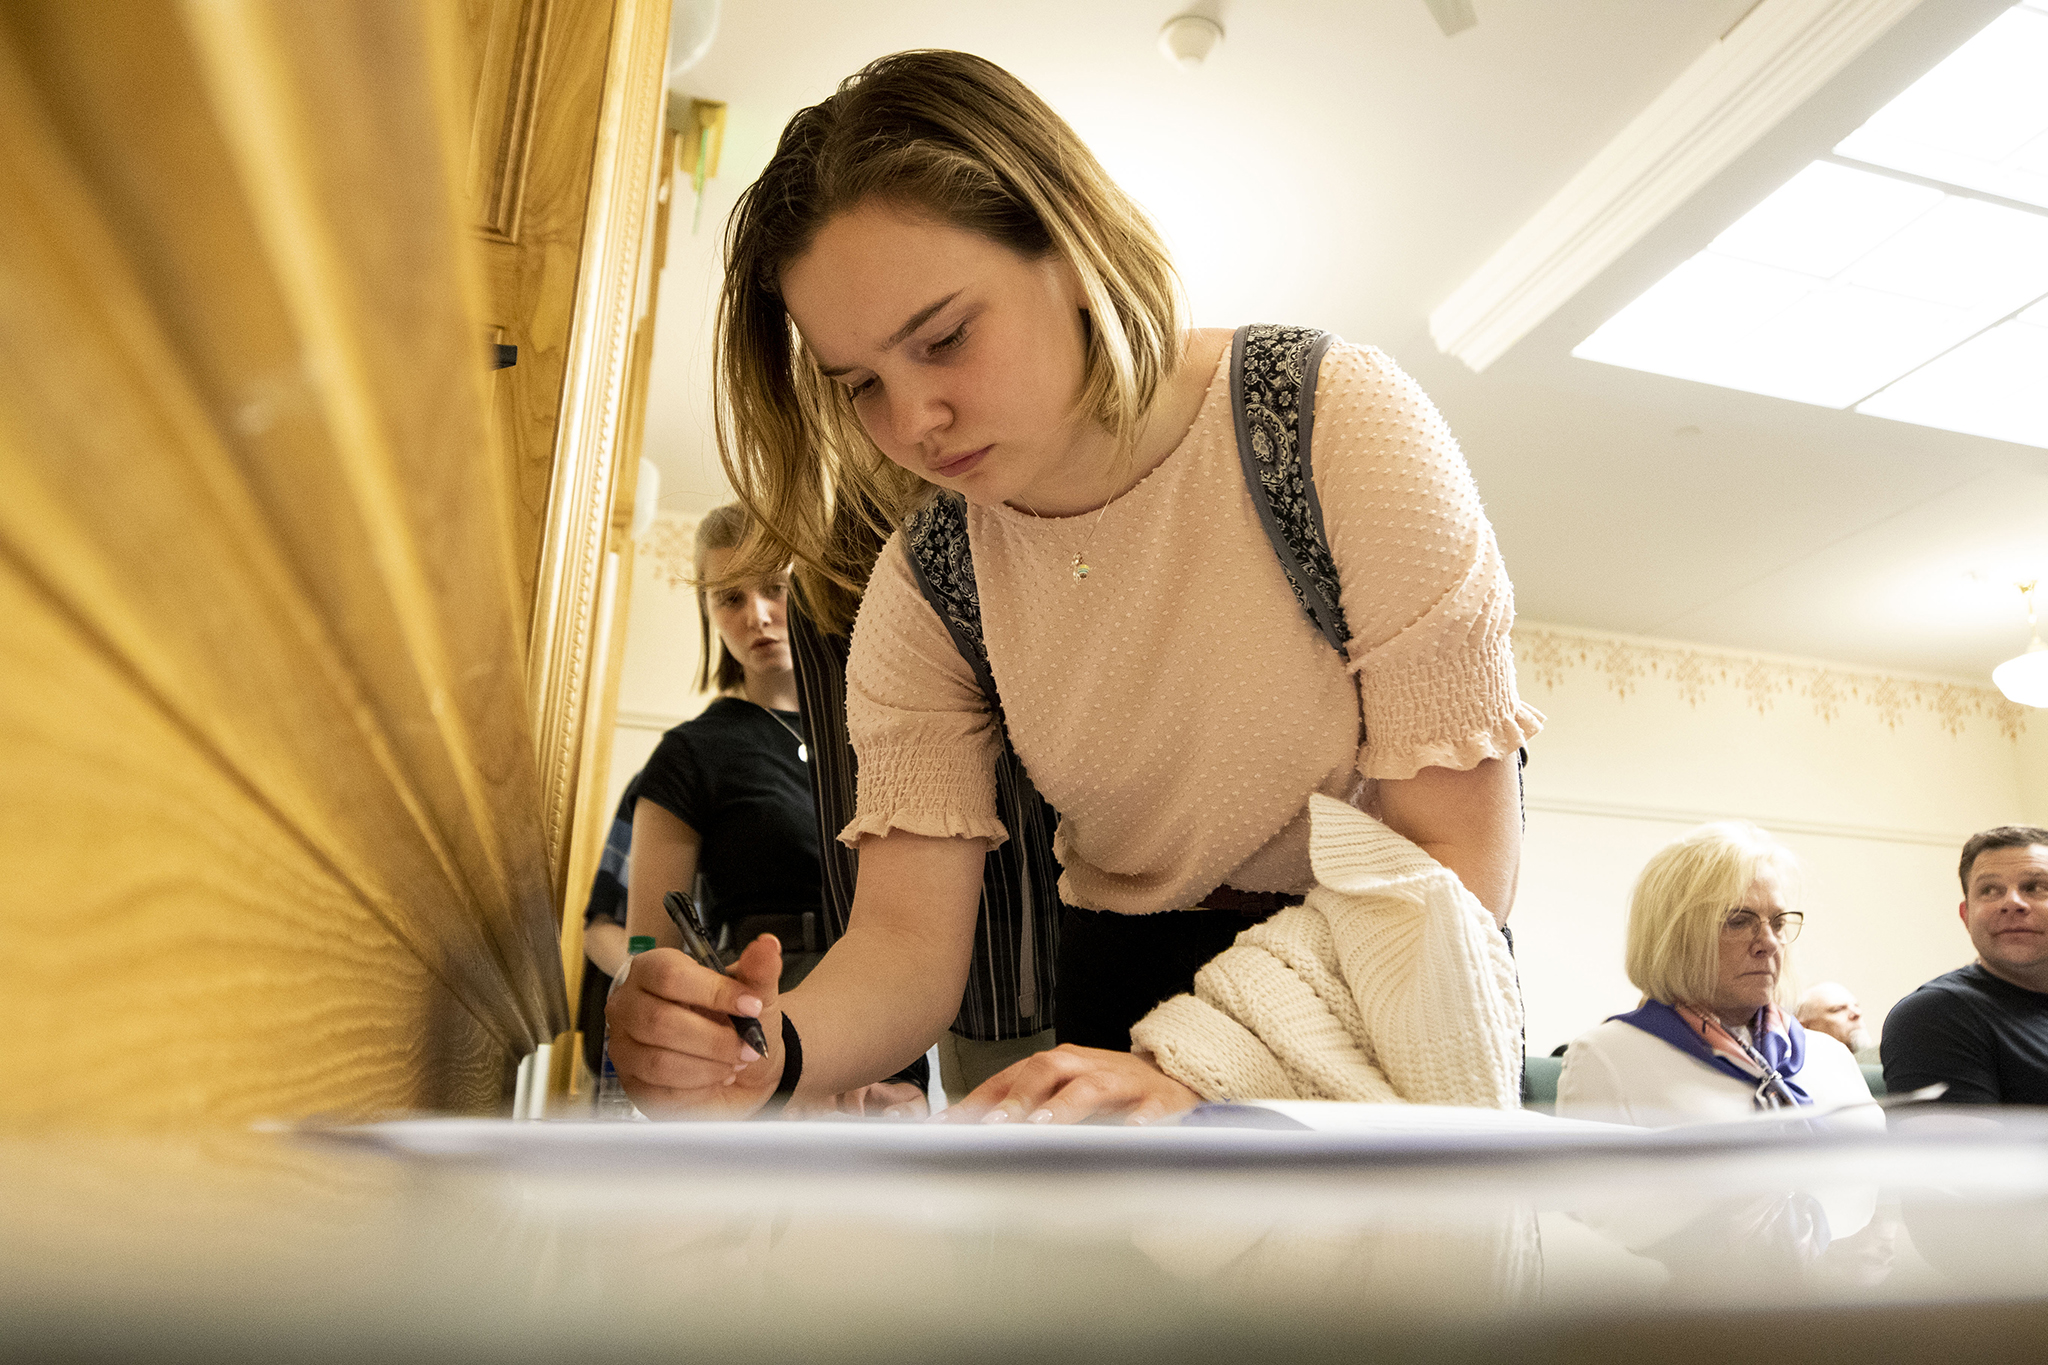 Meagan Figgins, an 11th grader from Nederland High School, signs up to testify before the state's Health and Insurance Committee on March 4, 2020. (Kevin J. Beaty/Denverite)